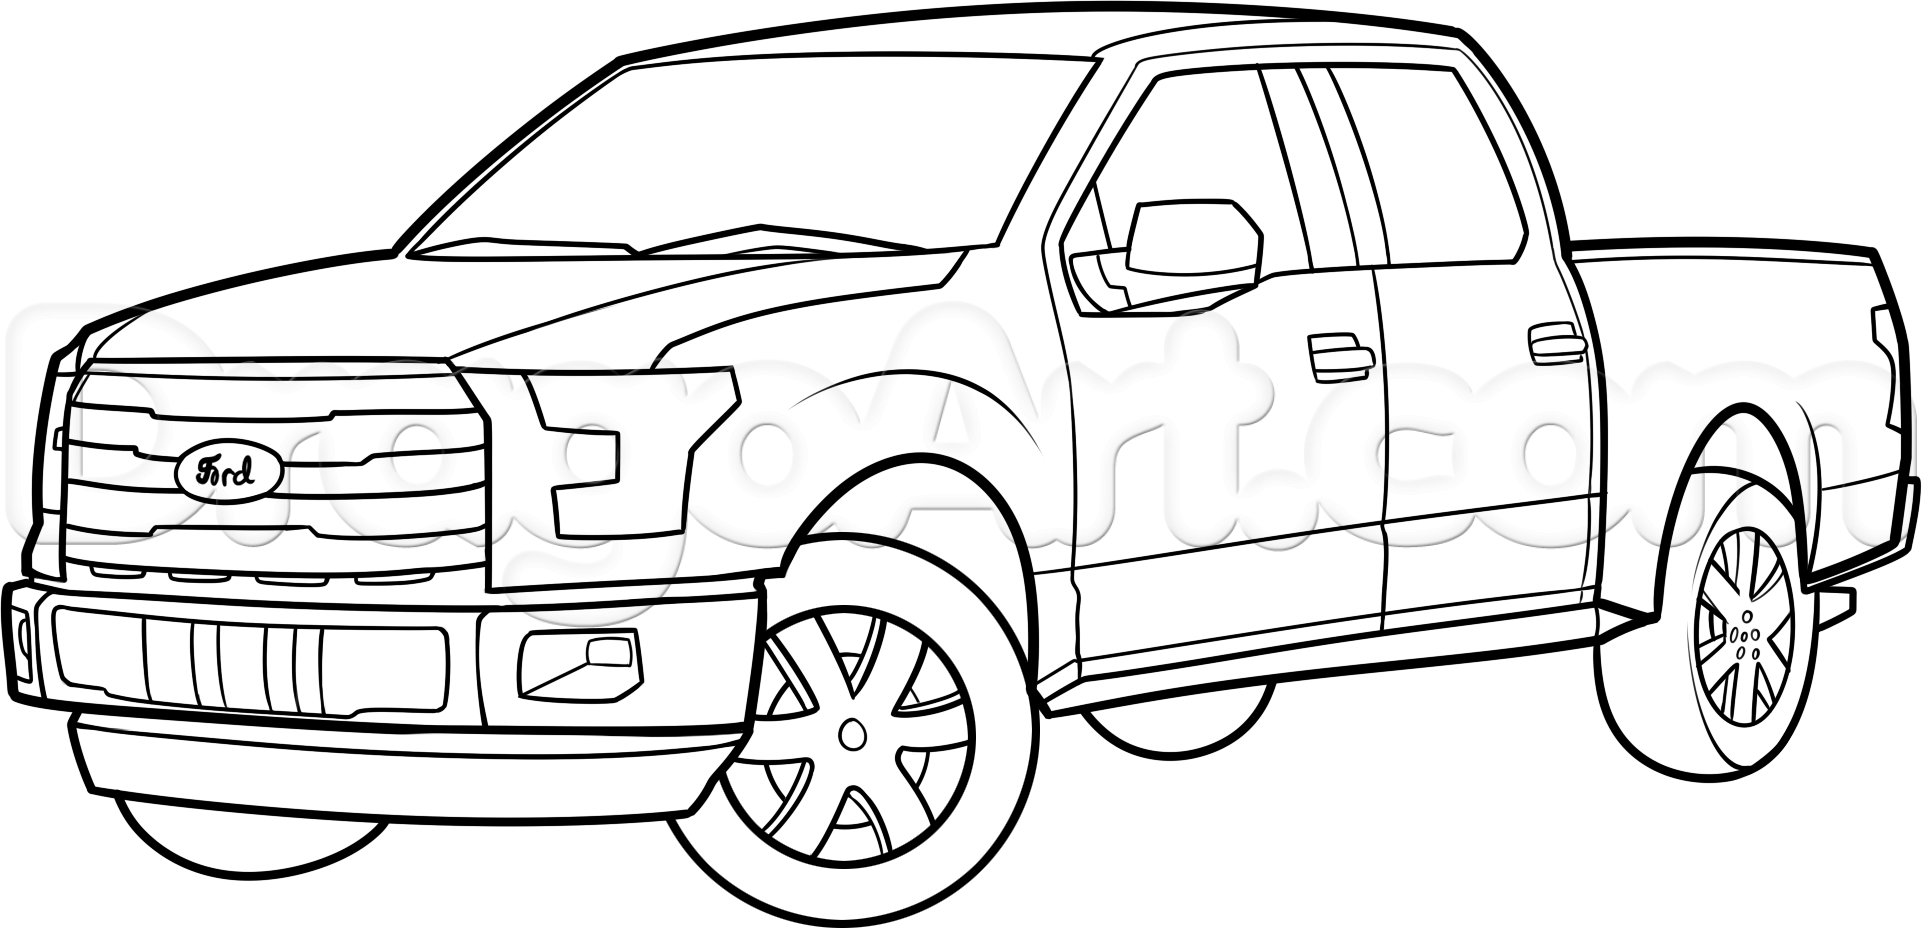 how to draw an f 150 ford pickup truck step 11 work pinterest 1972 Chevy Pickup 4x4 how to draw an f 150 ford pickup truck step 11